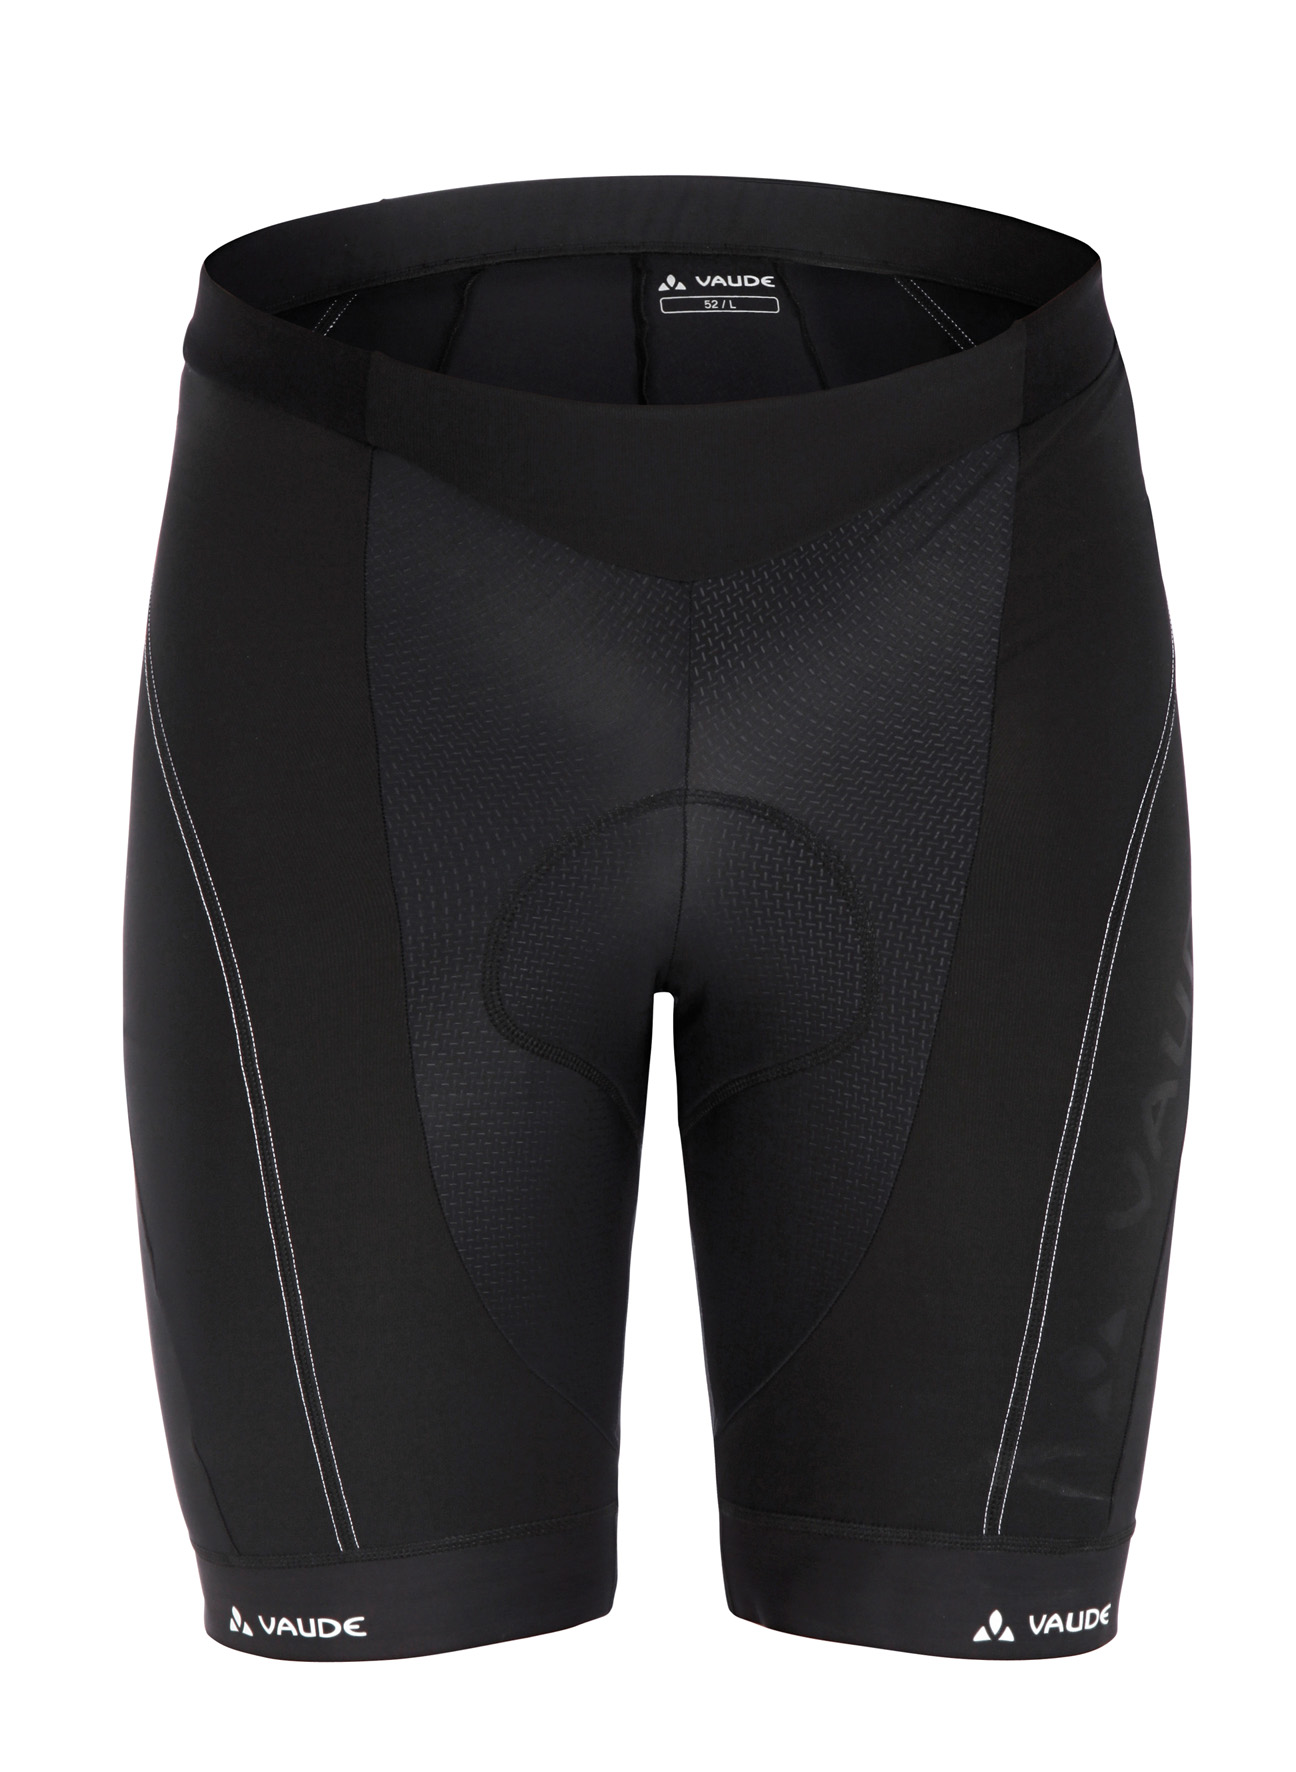 VAUDE Men´s Pro Pants black Größe S - schneider-sports